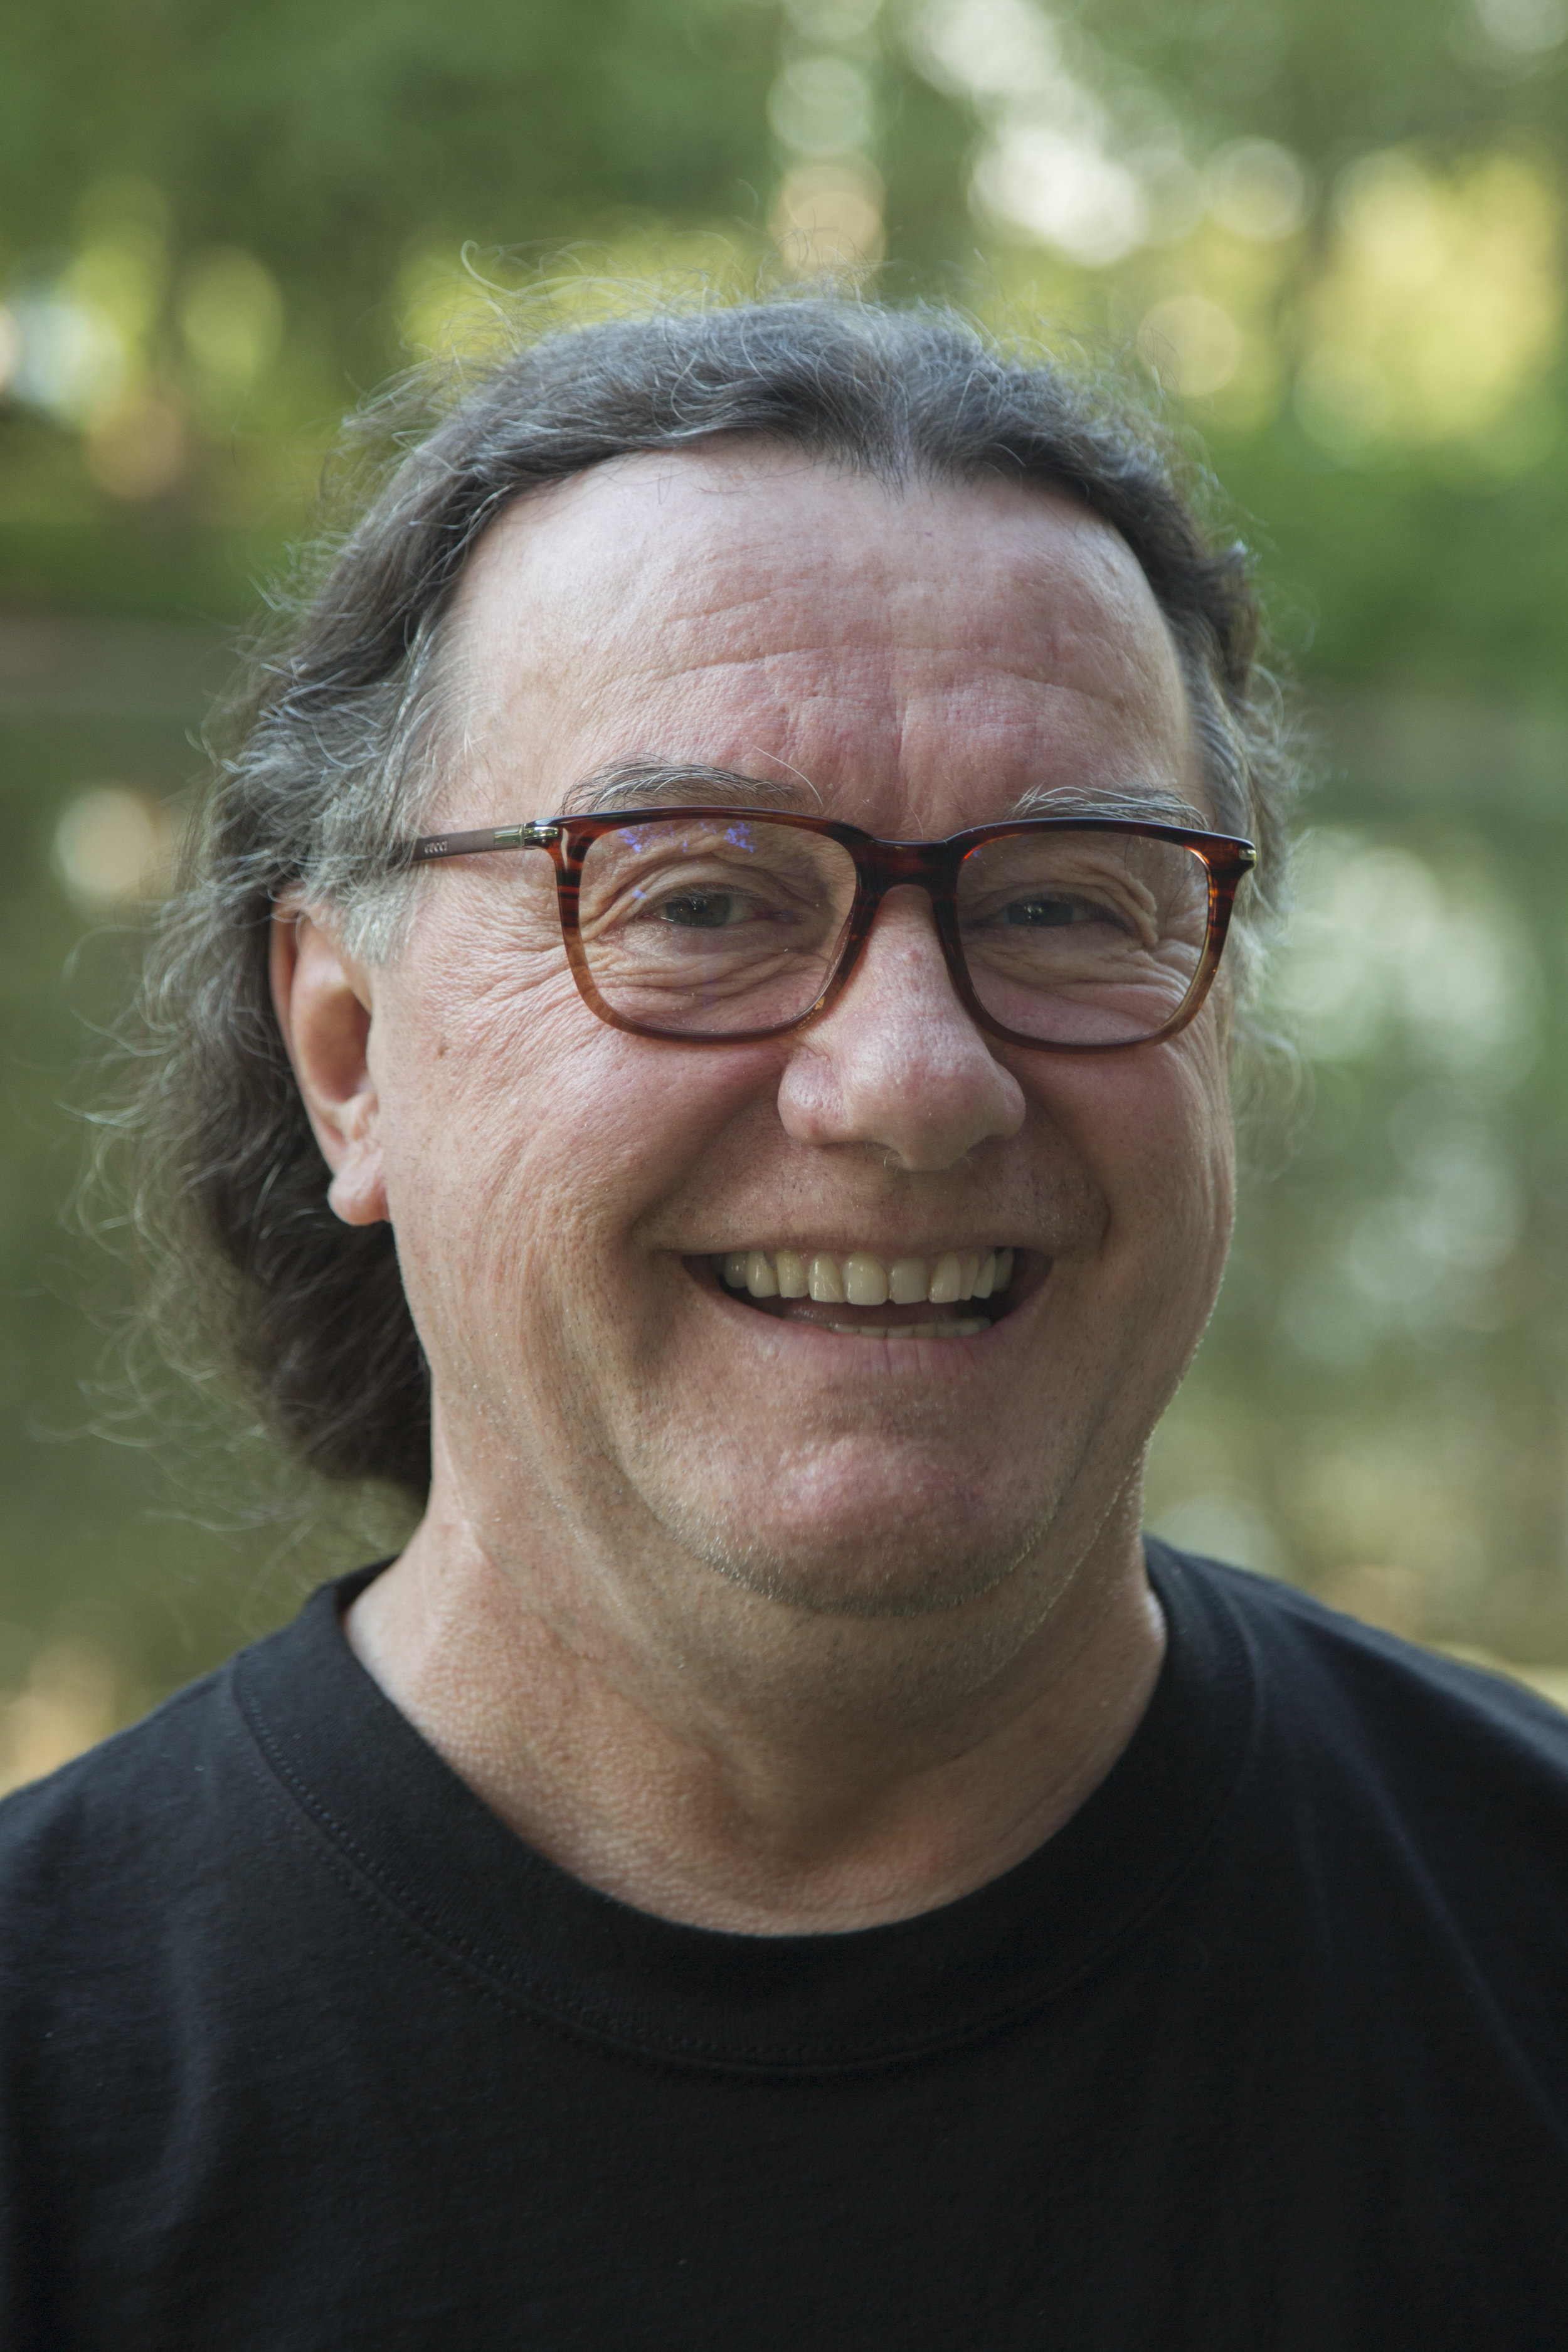 Ralph Palmer  The Veteran, with decades of animation experience in both of the fields of cinema and interactive. He has worked on titles like Atlantis, Tarzan, Pocahontas, Quatum Break,and many more.